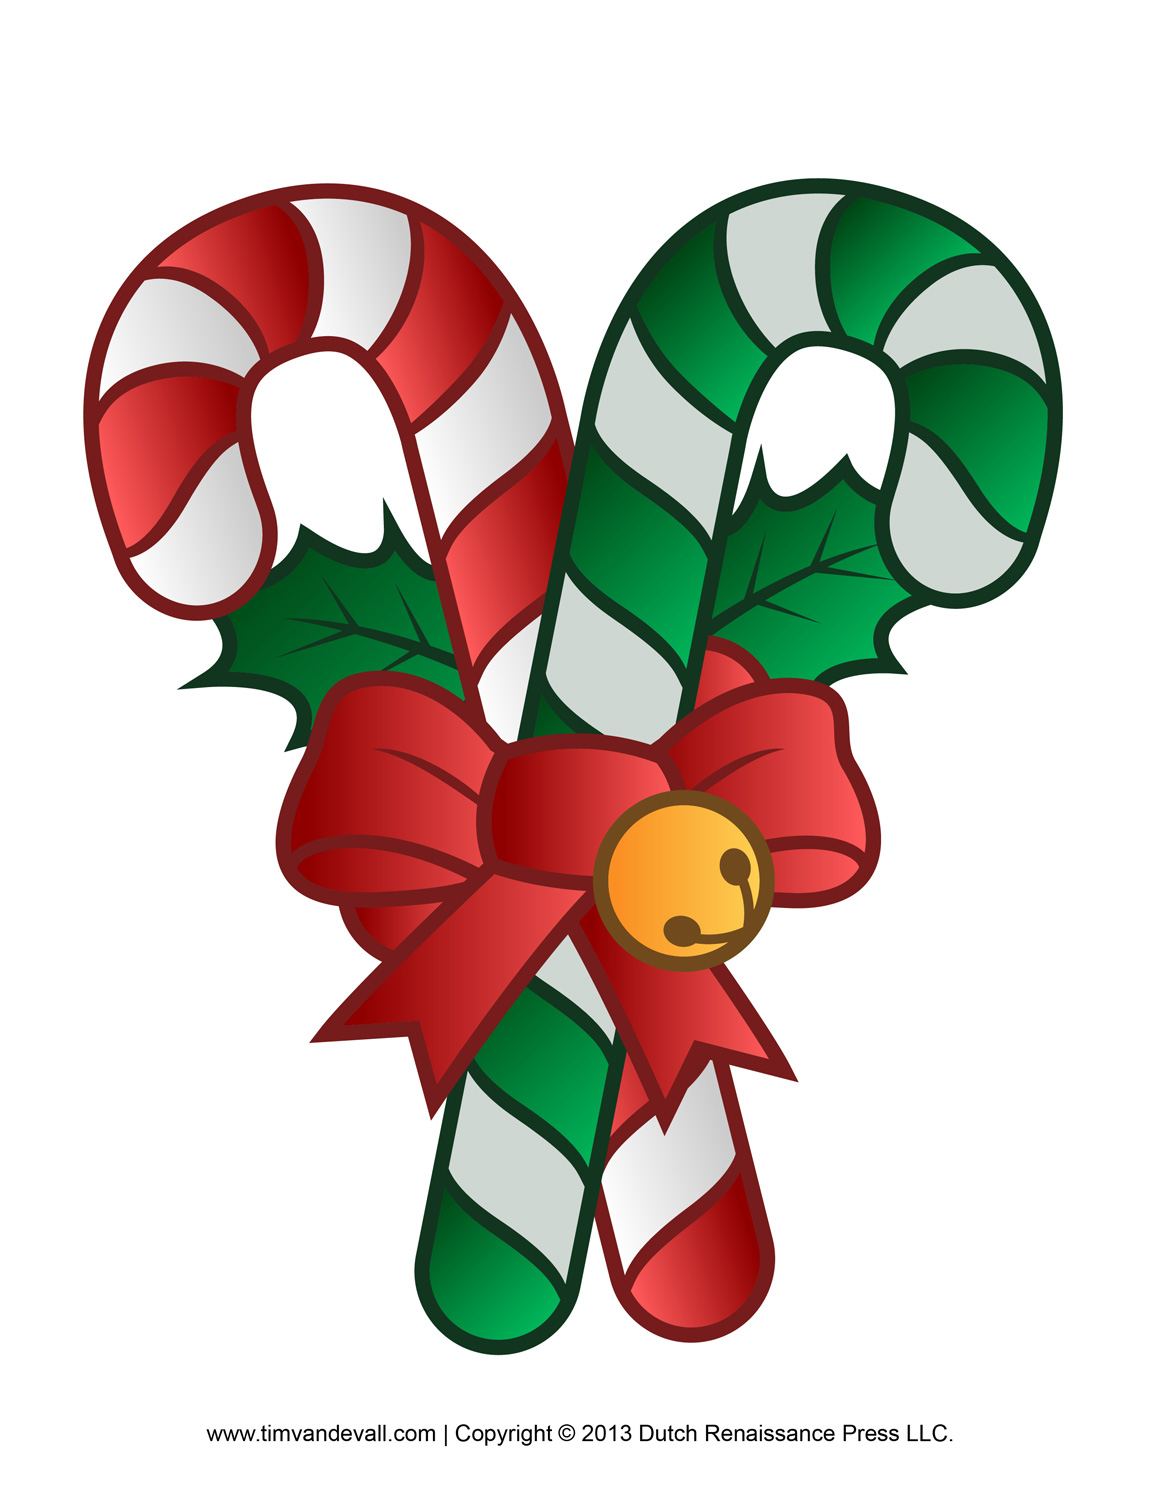 Christmas candy cane clipart-Christmas candy cane clipart-8